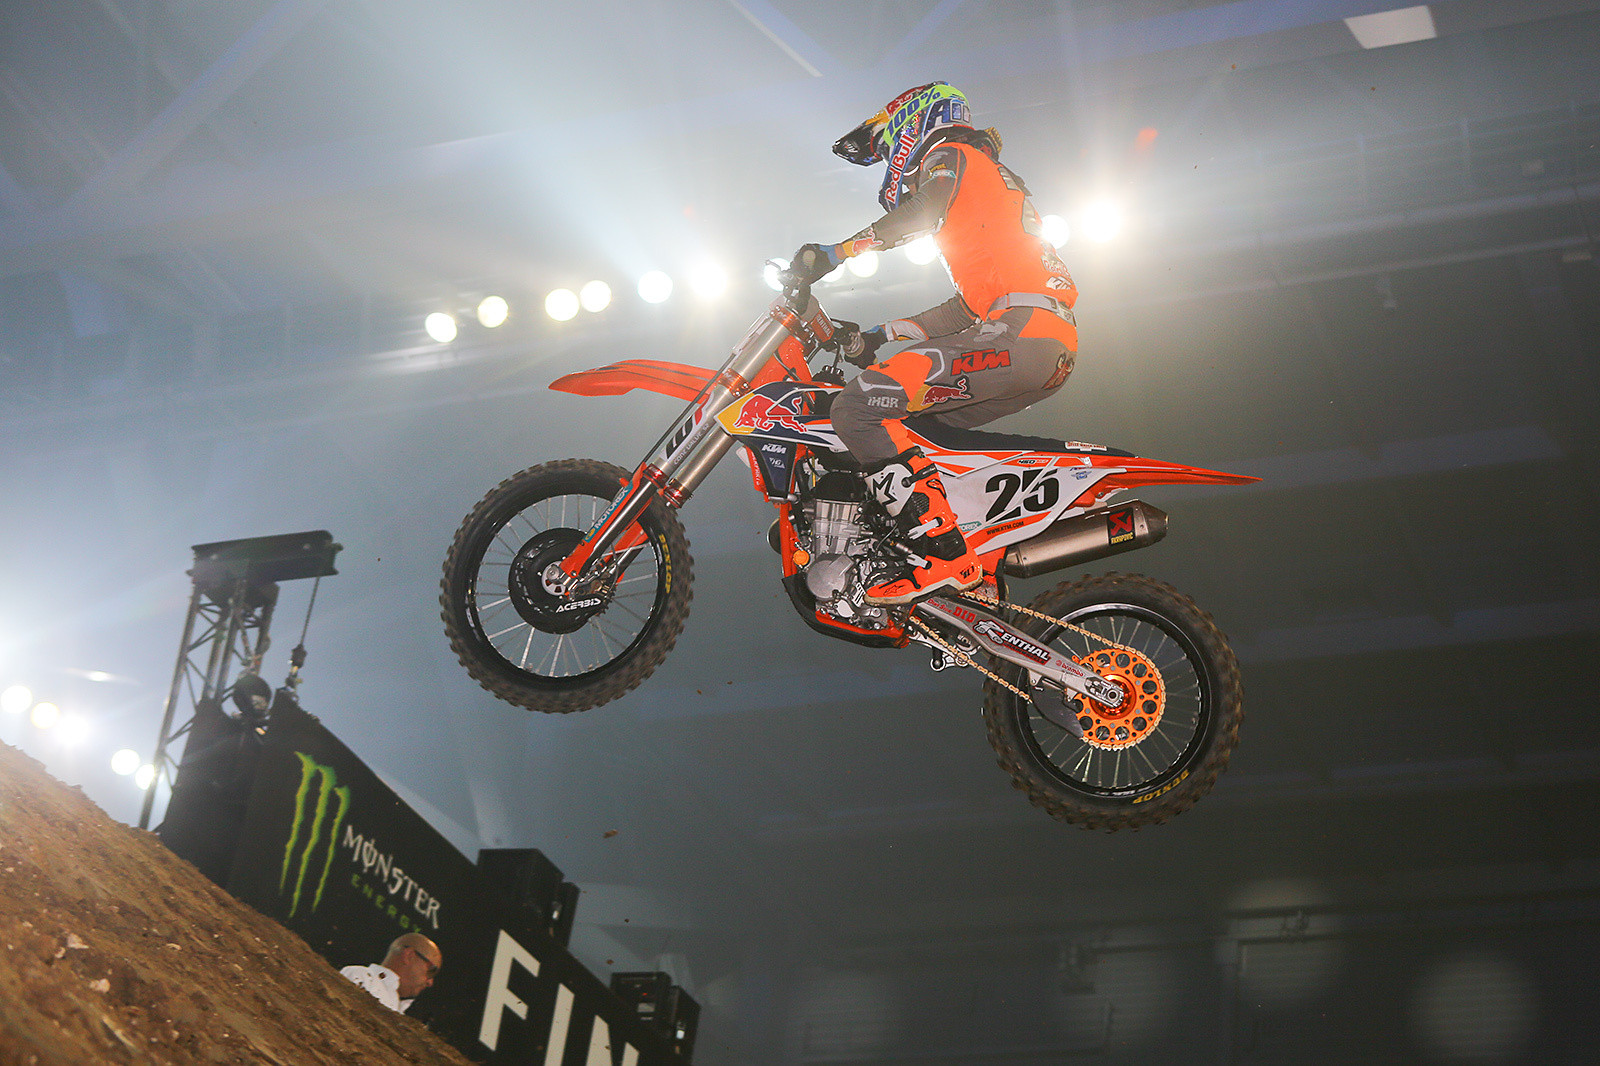 Marvin Musquin - Photo Gallery: Saturday at the Paris-Lille Supercross - Motocross Pictures - Vital MX